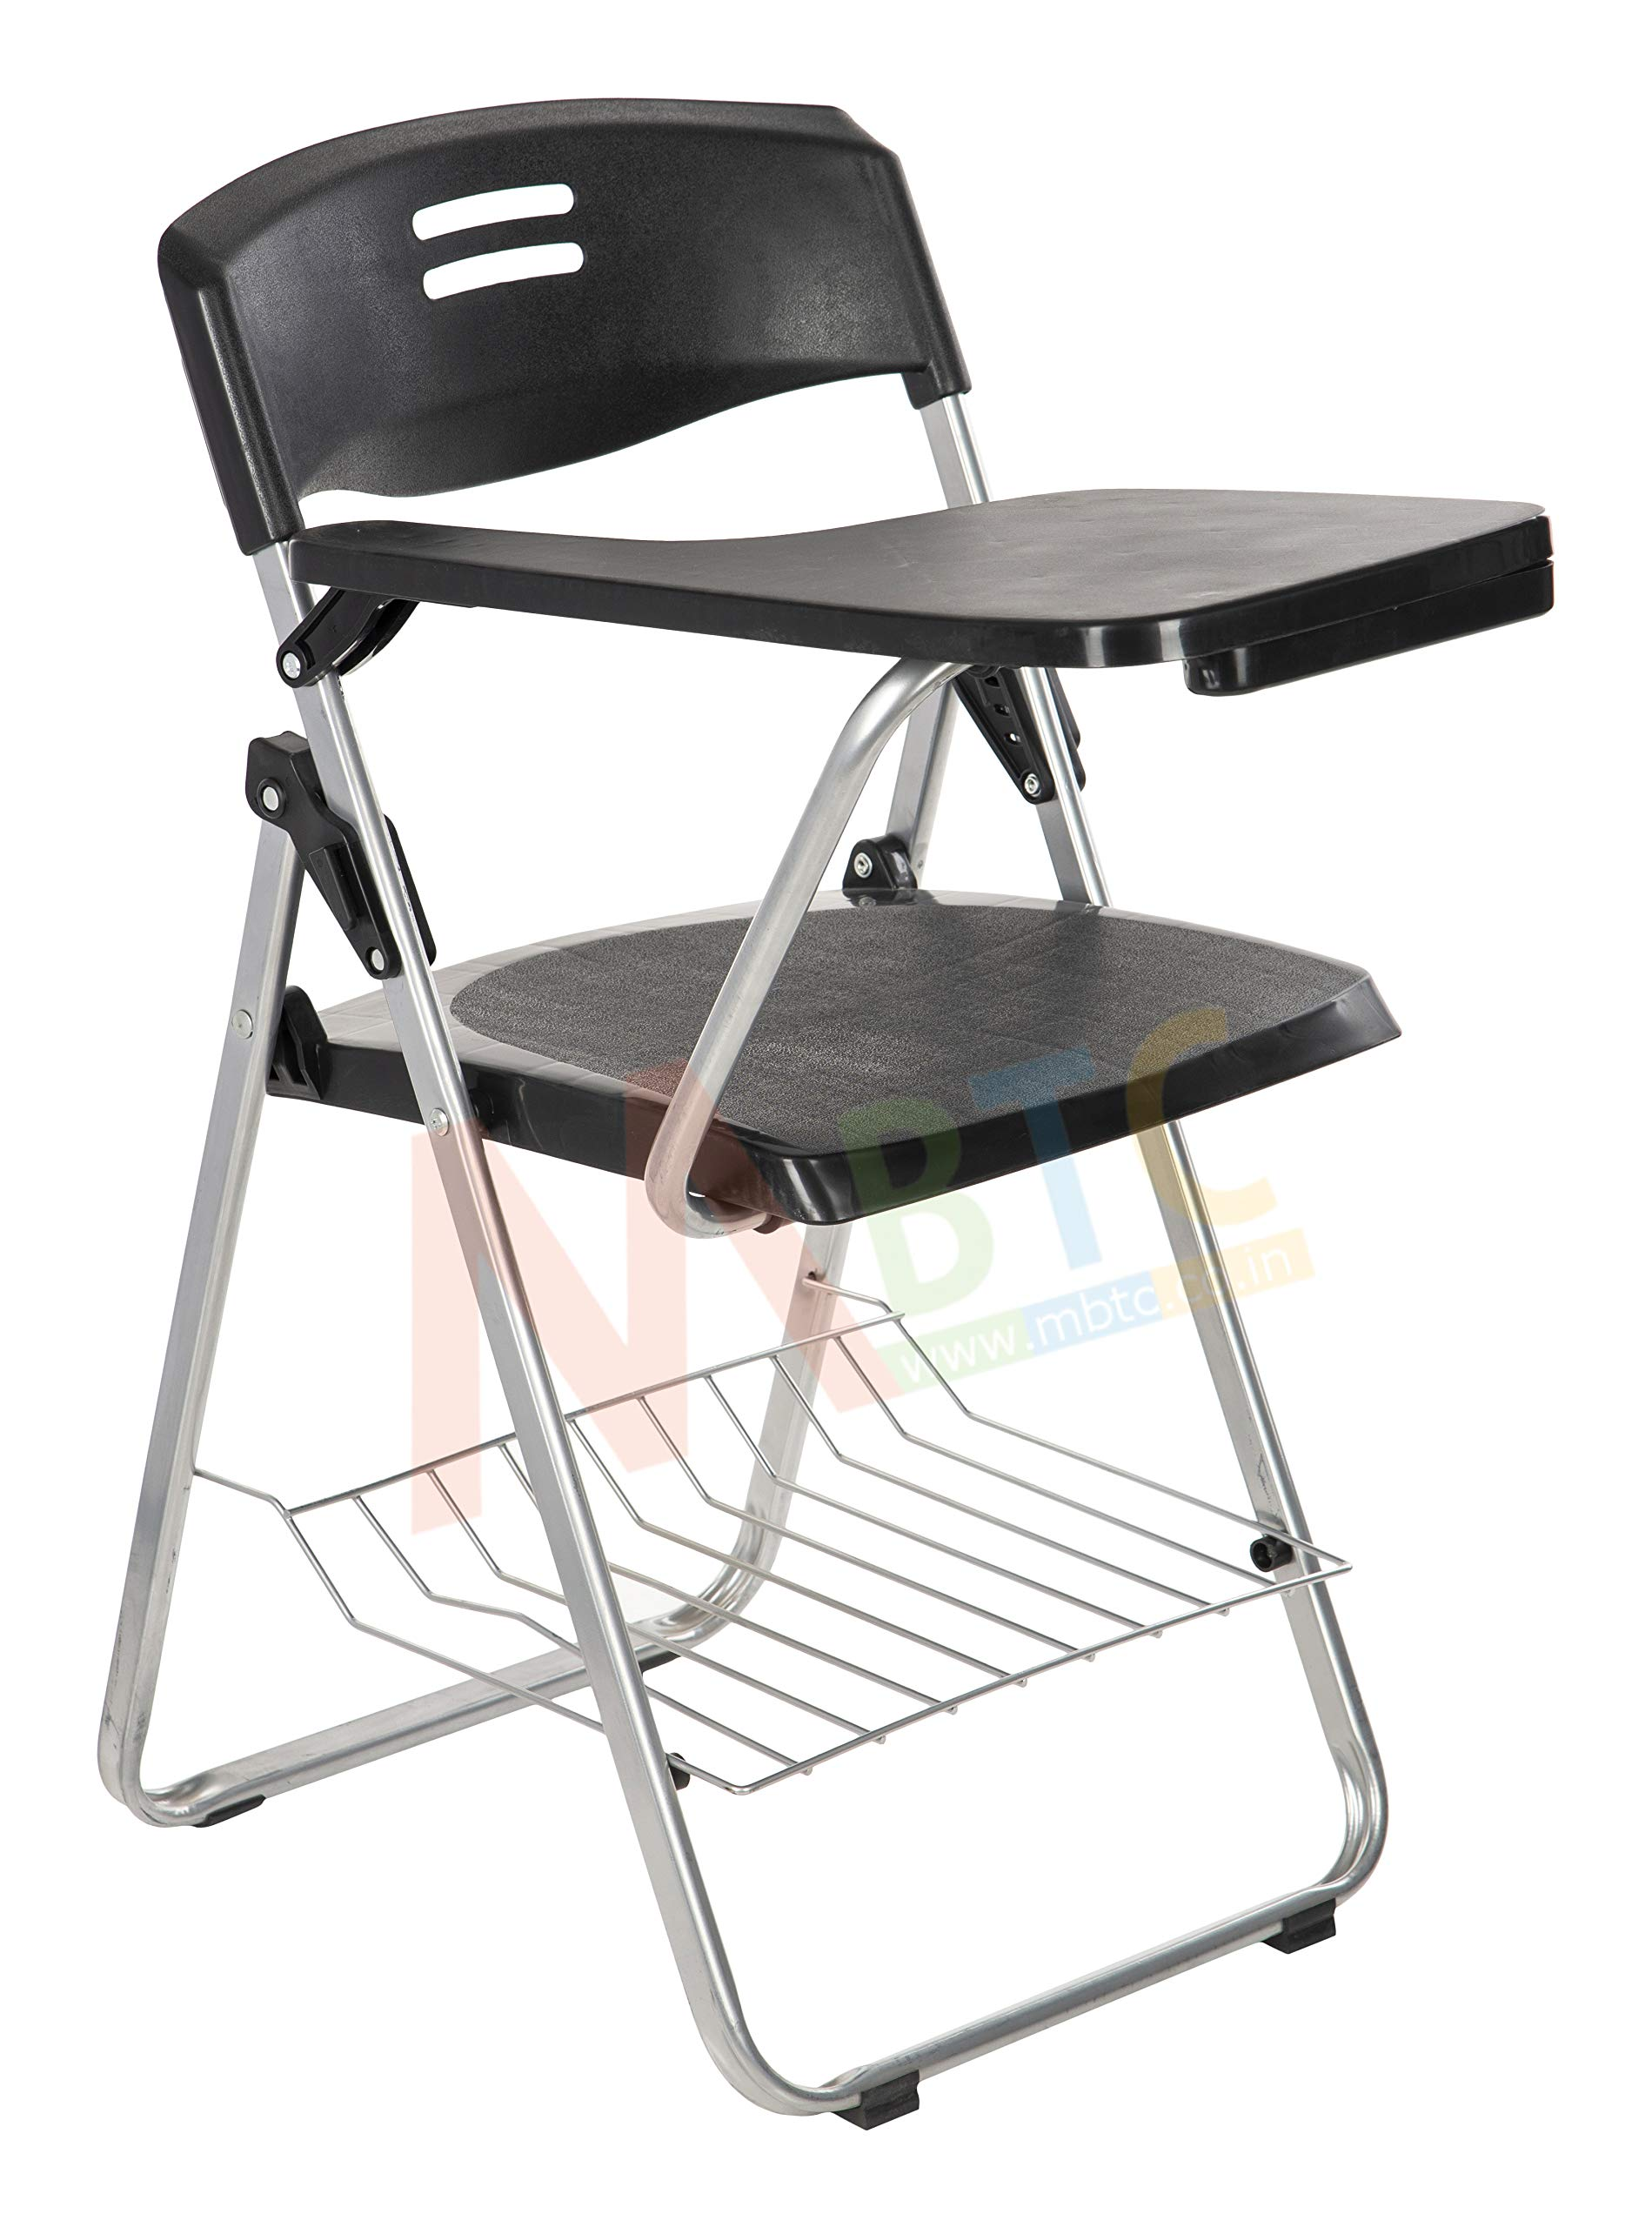 MBTC Erizo Folding Student Writing Pad Chair in Black (Suitable for  Students & Moderate Adult)